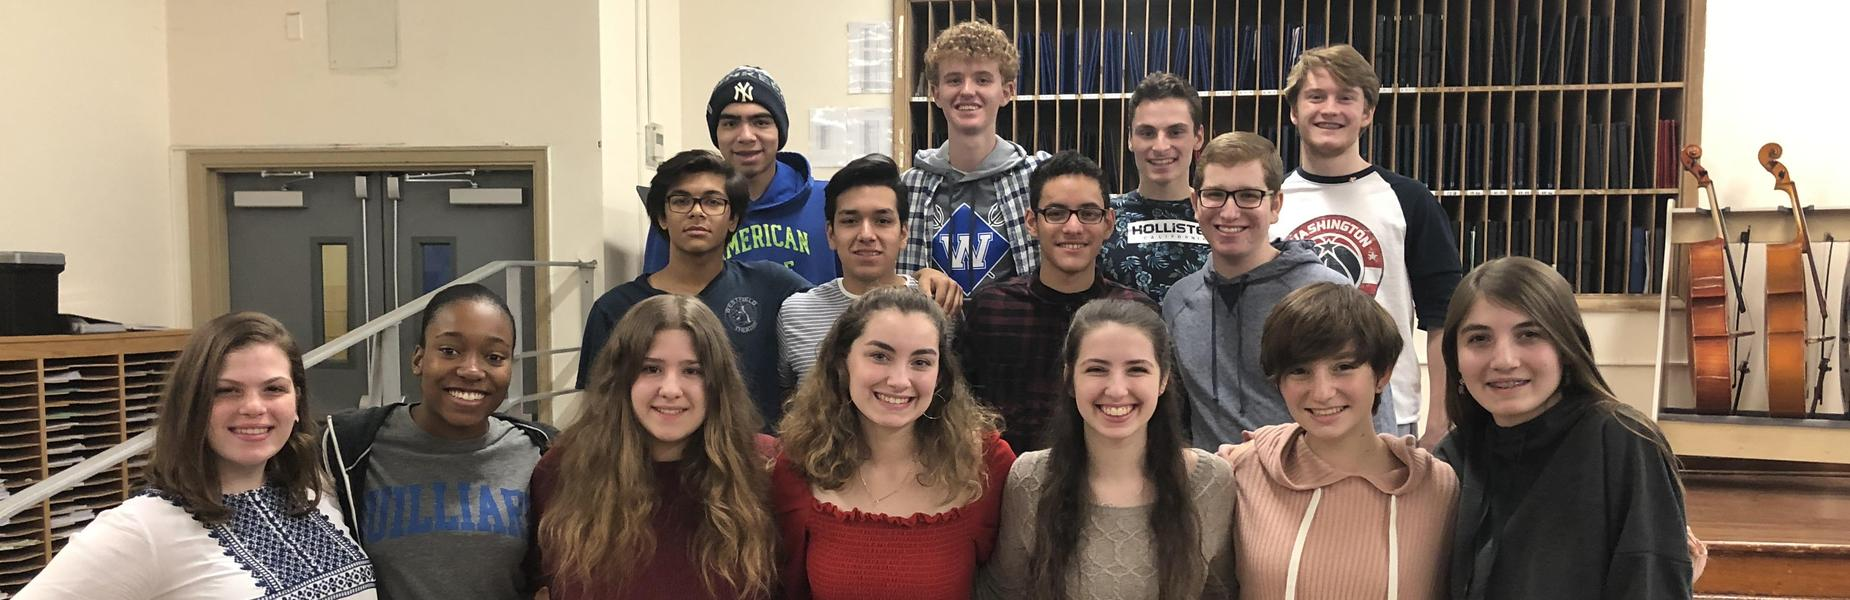 15 Westfield High School student vocalists will perform with a Central Jersey chorus in January.  The 15 are pictured here, posing for a picture.